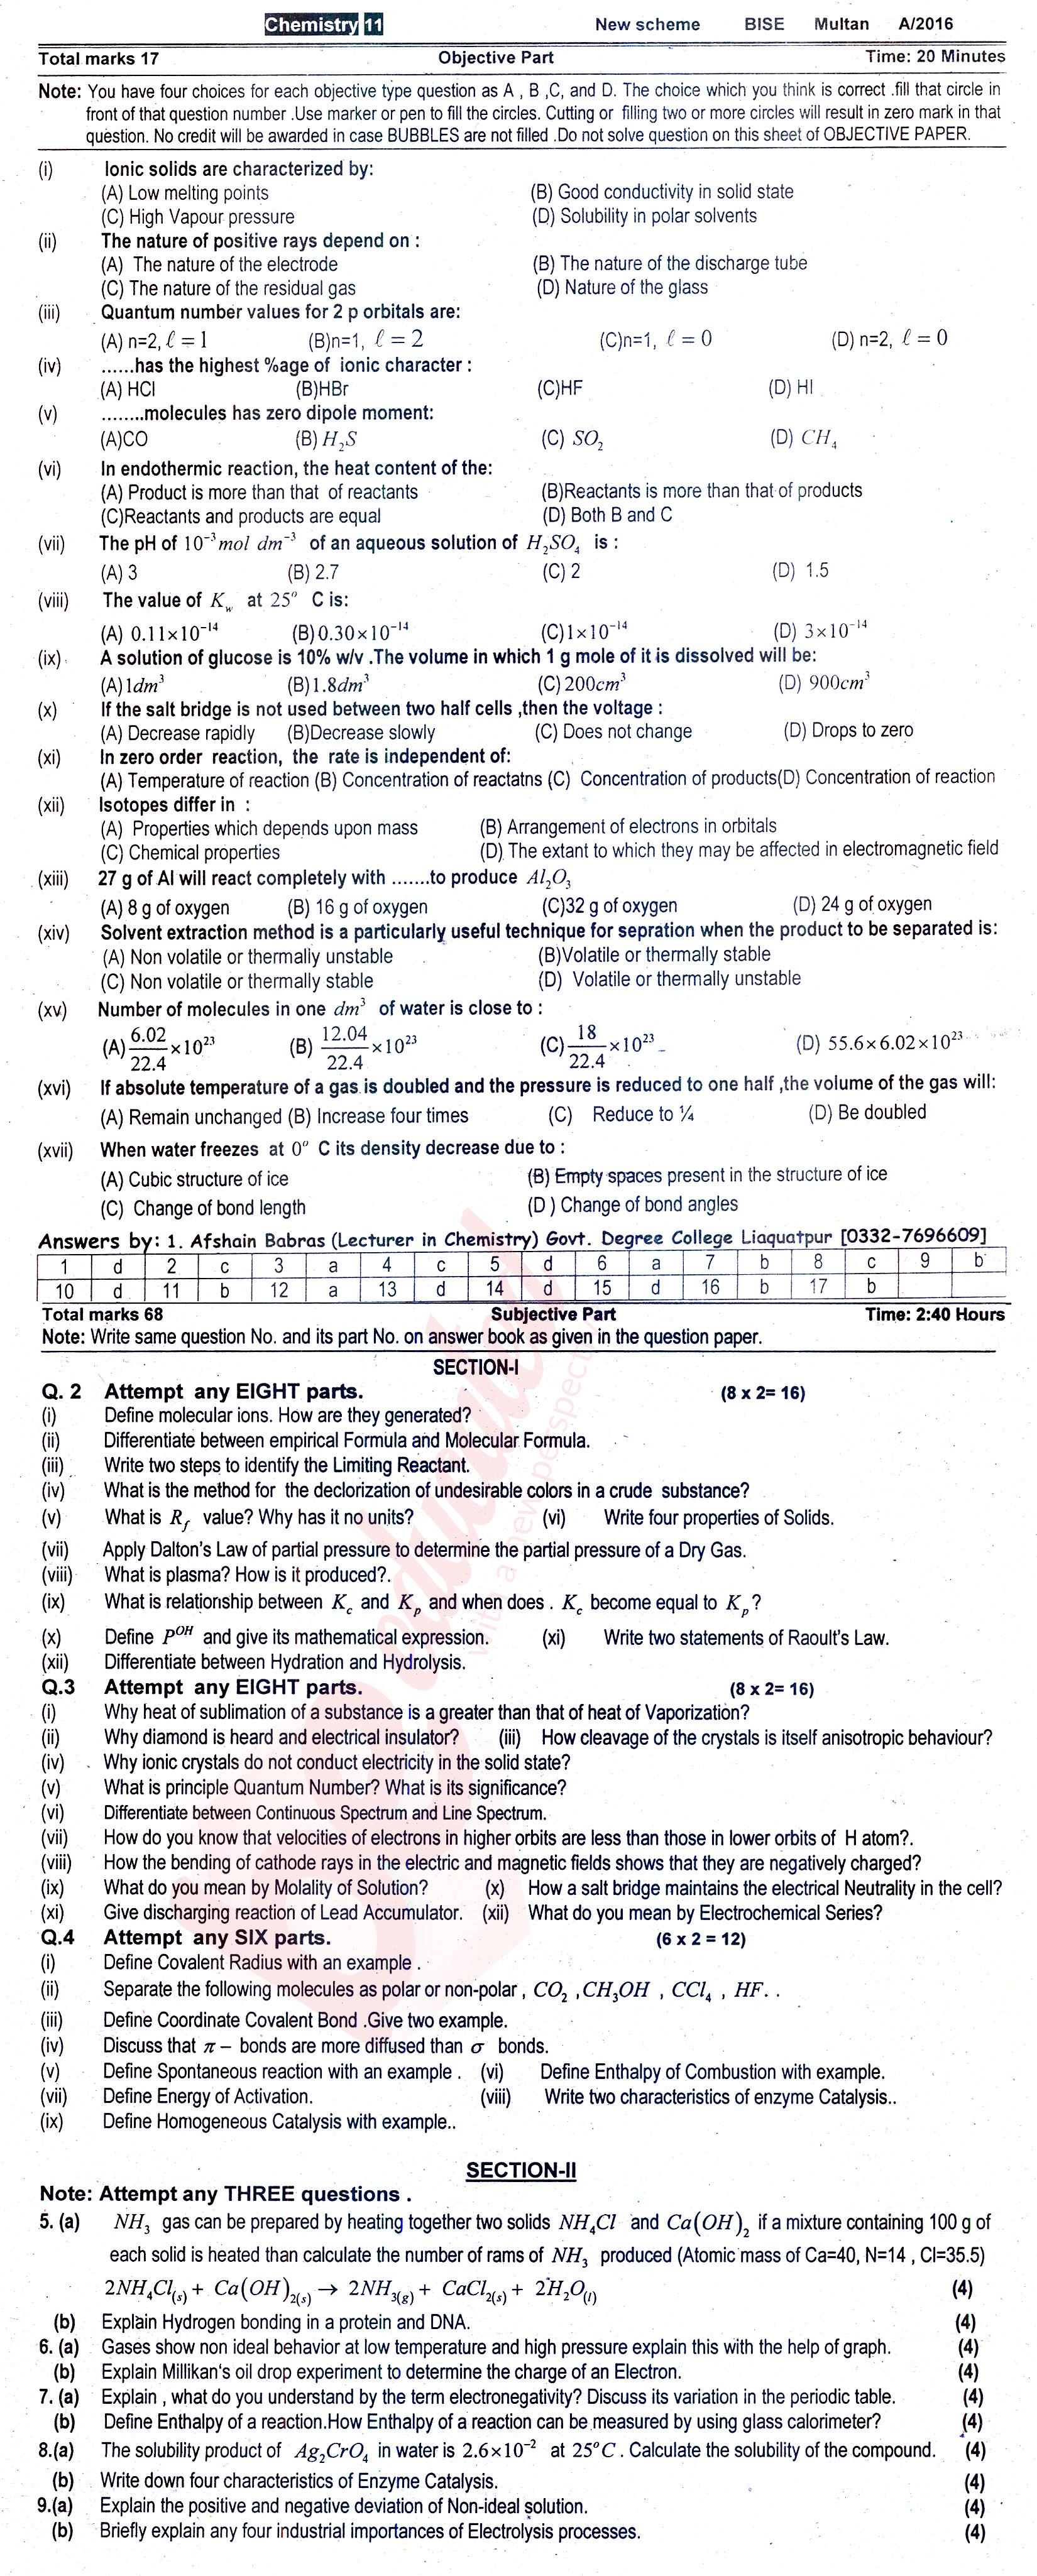 chemistry past paper Past papers from the january csec examinations added to download section  highschool in belize city i'm seeking the past paper for chemistry ,biology spanish.